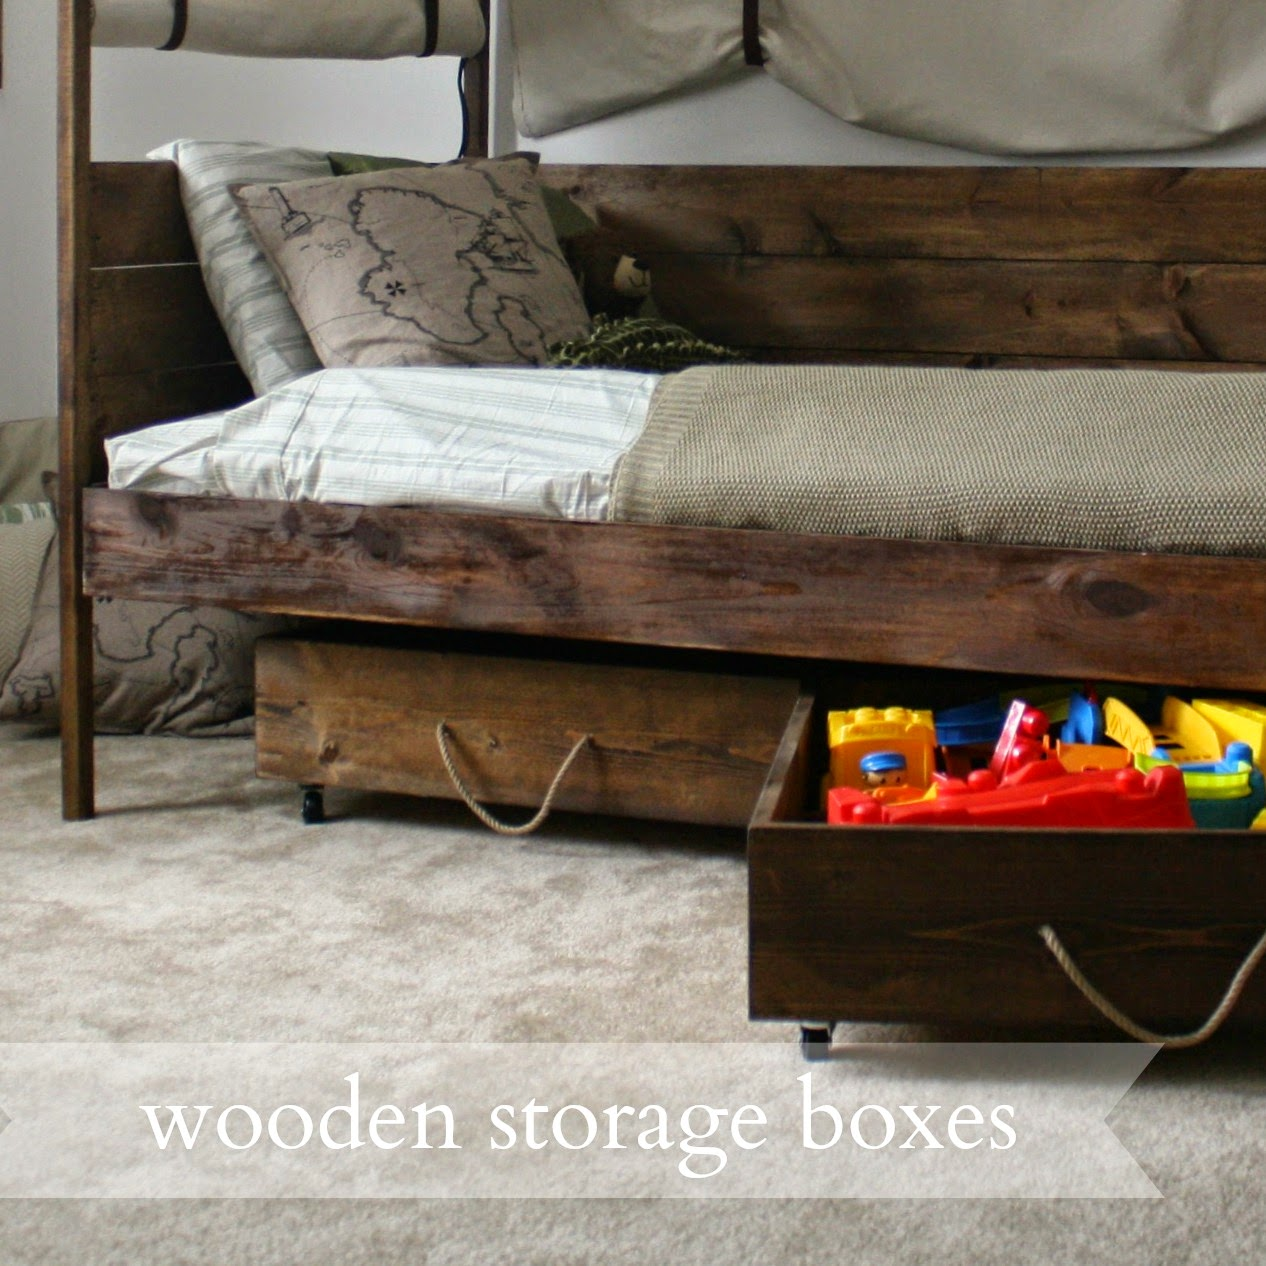 Live a little wilder wooden storage boxes tutorial for Wooden box tutorial